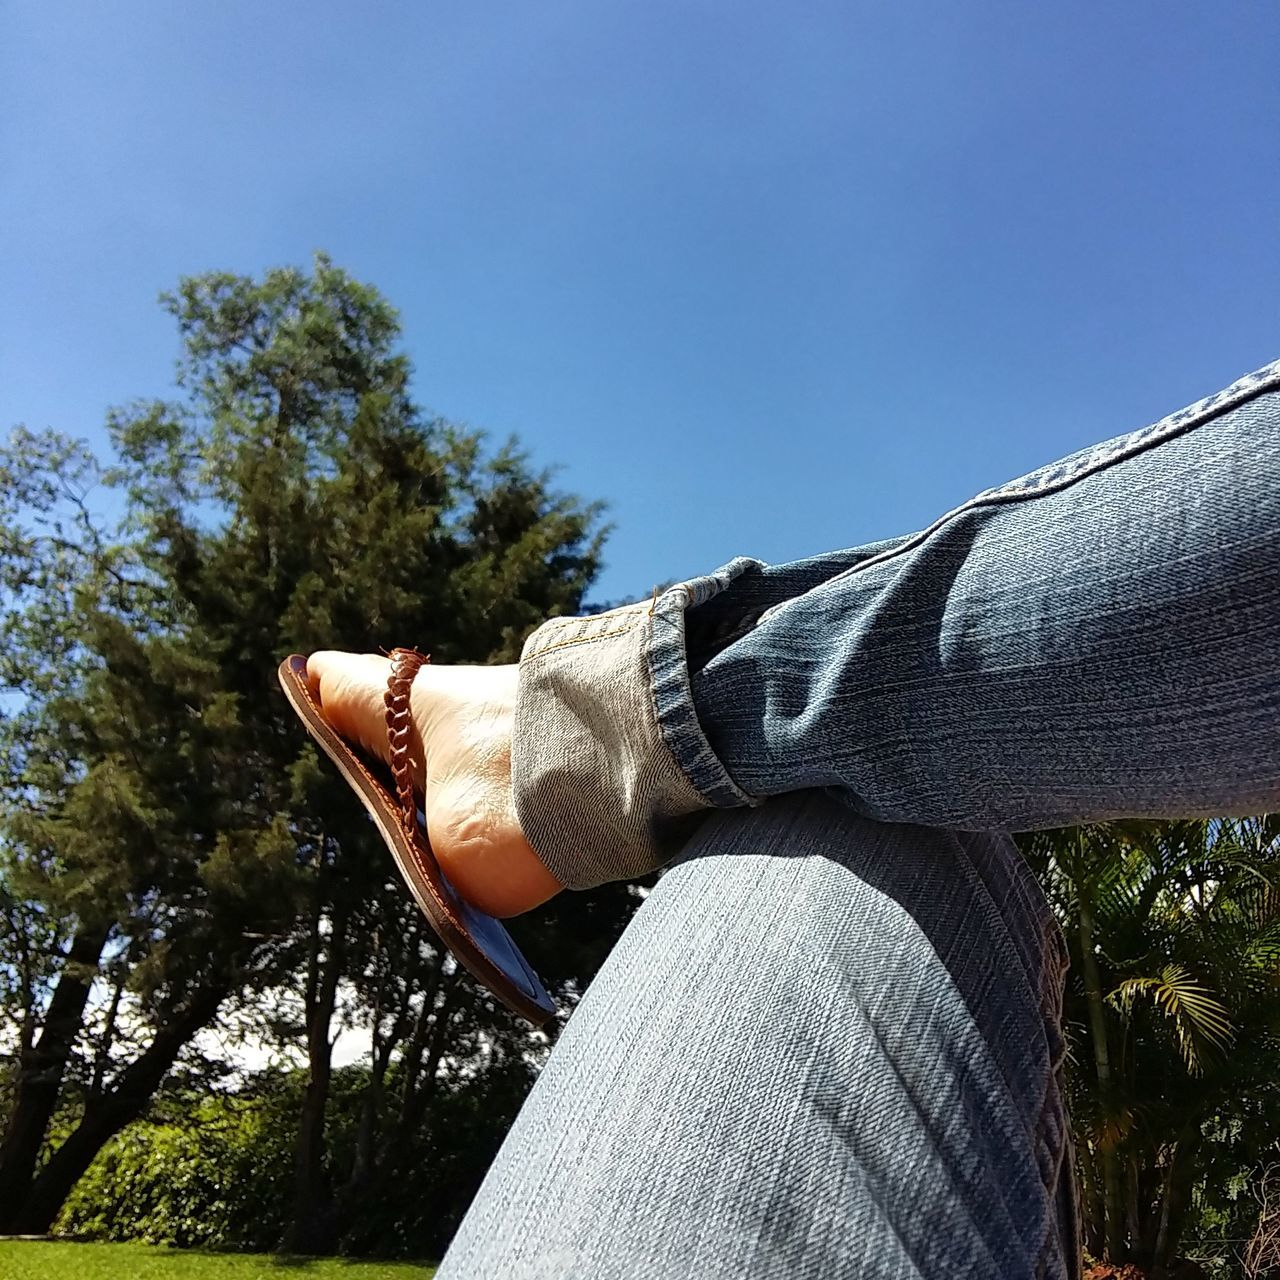 tree, one person, low section, real people, human leg, jeans, day, outdoors, human body part, low angle view, clear sky, nature, sky, close-up, people